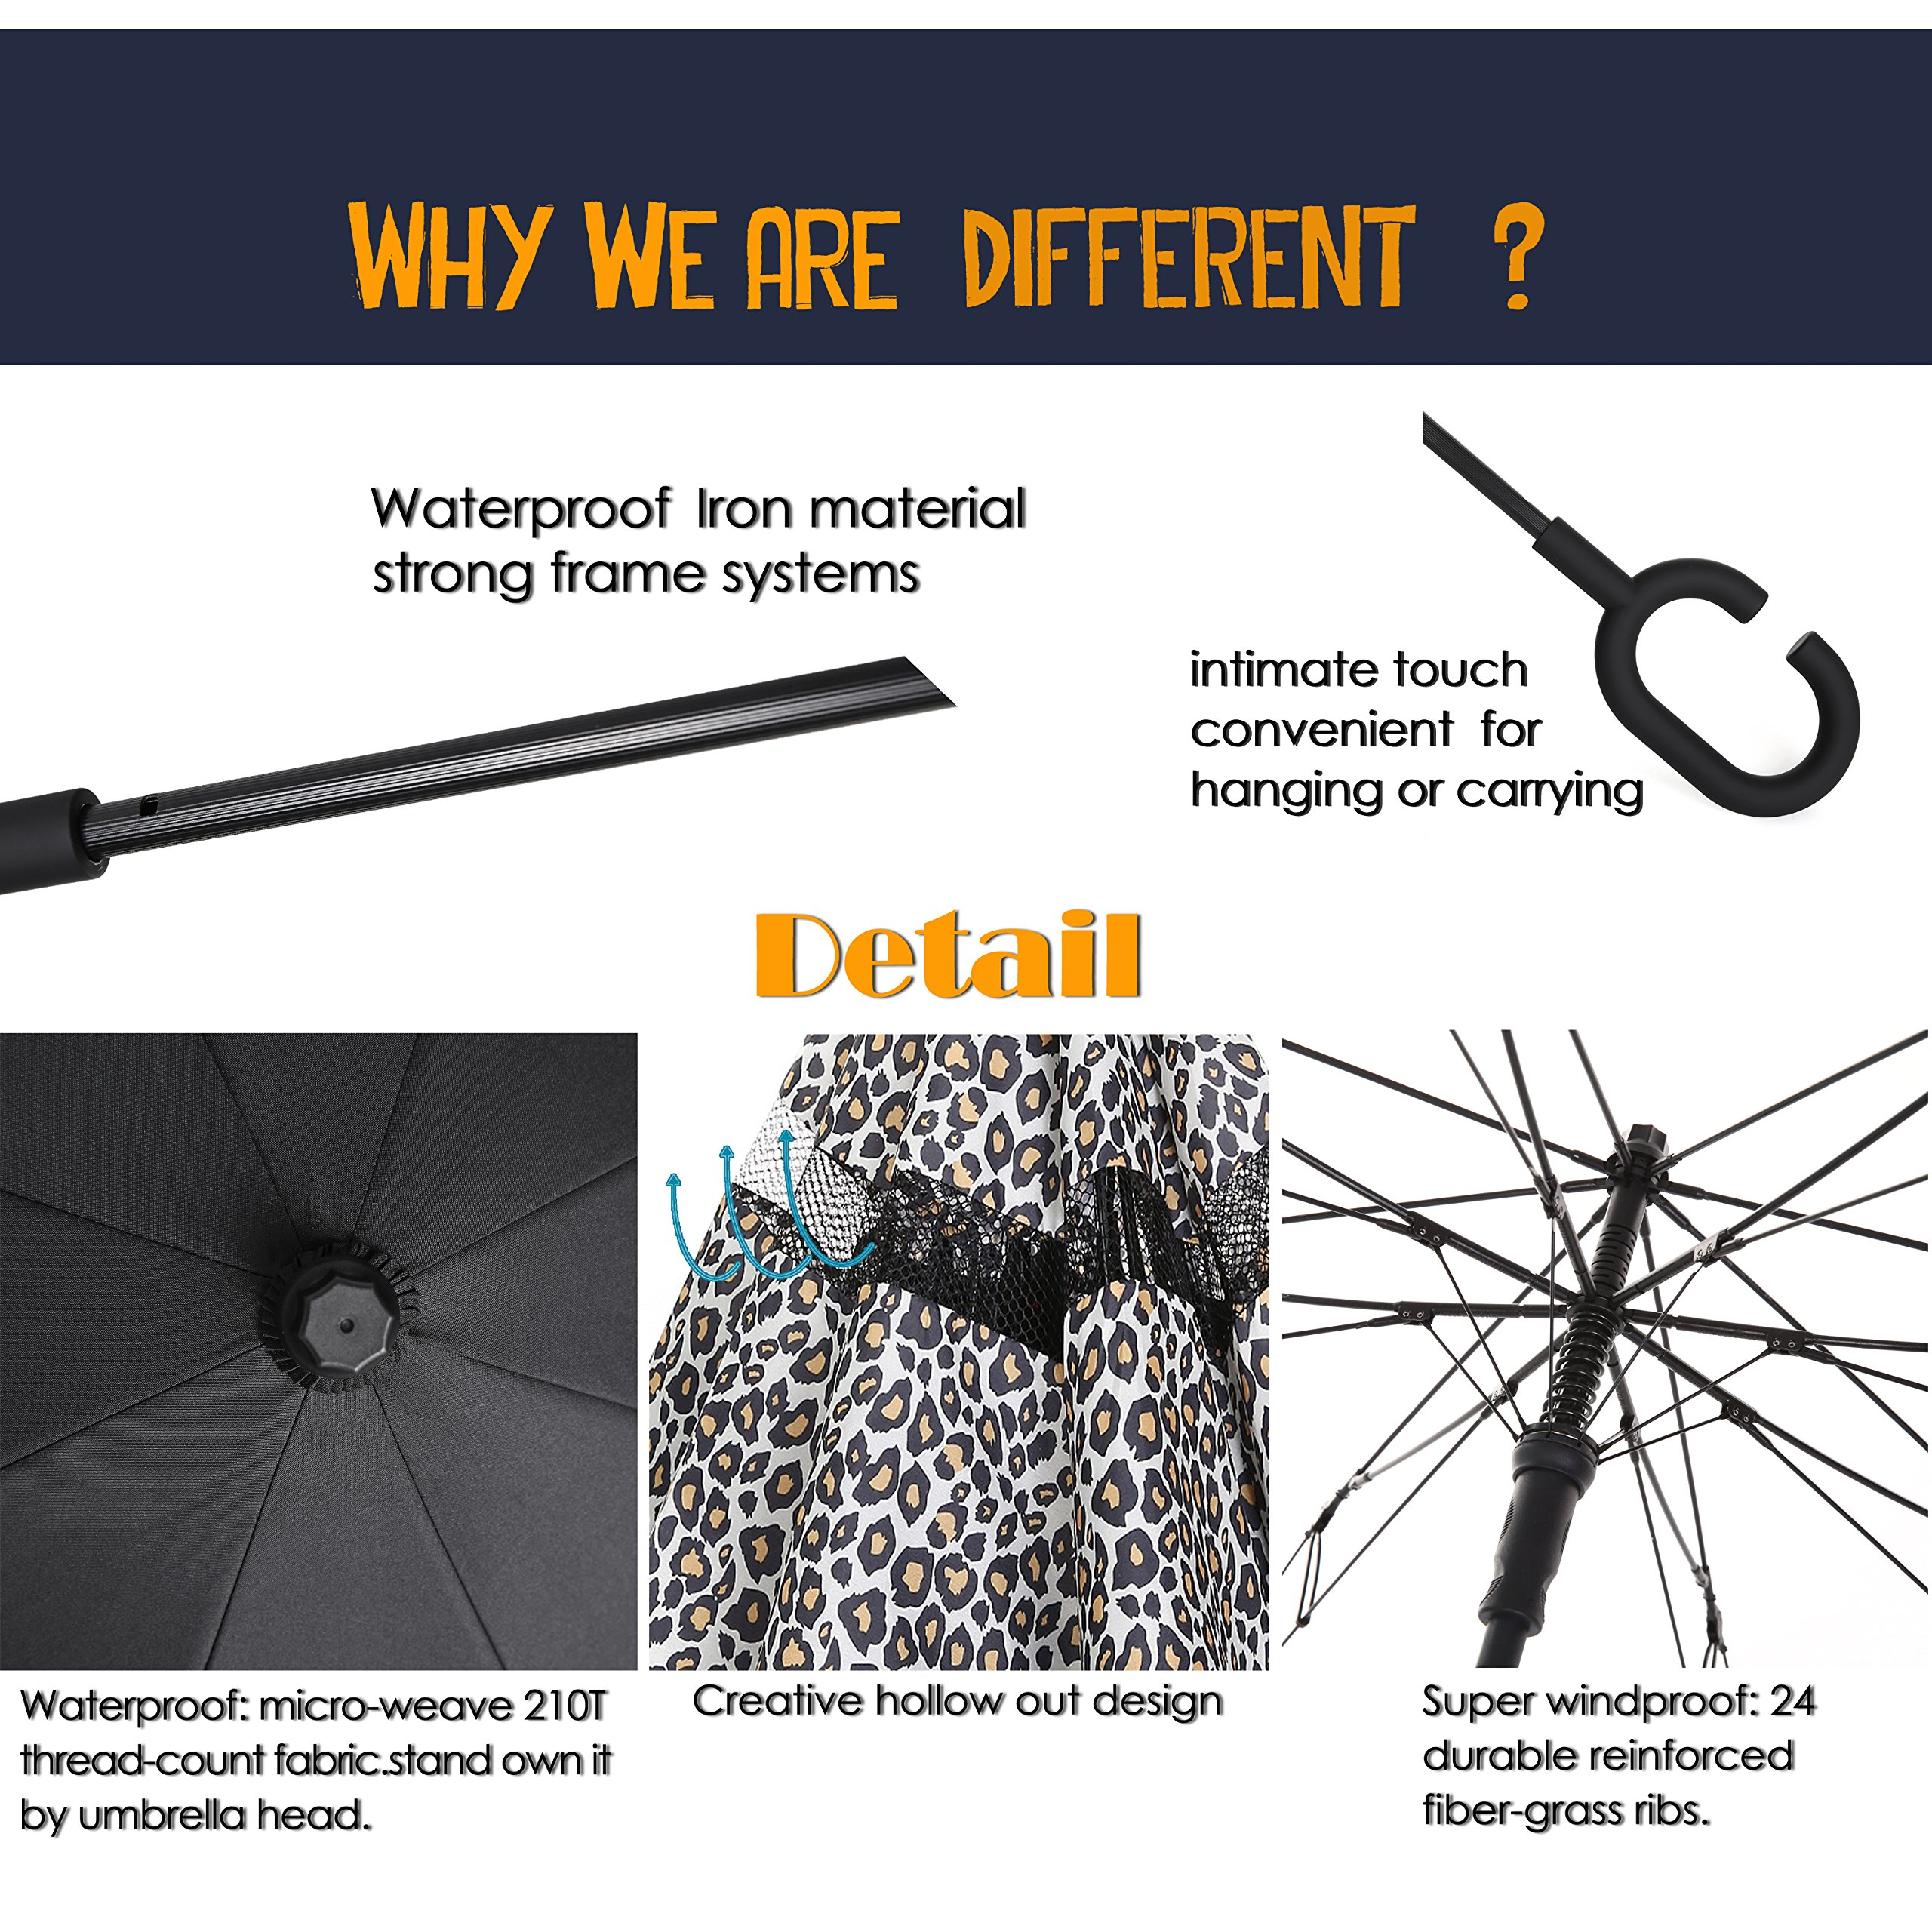 Barasol Reverse Folding Umbrella Travel Windproof Compact Umbrella Waterproof Double Canopy Vented Layer Inverted Close Golf Umbrella Lightweight for Man Women, Manually Open Leopard by Barasol (Image #7)